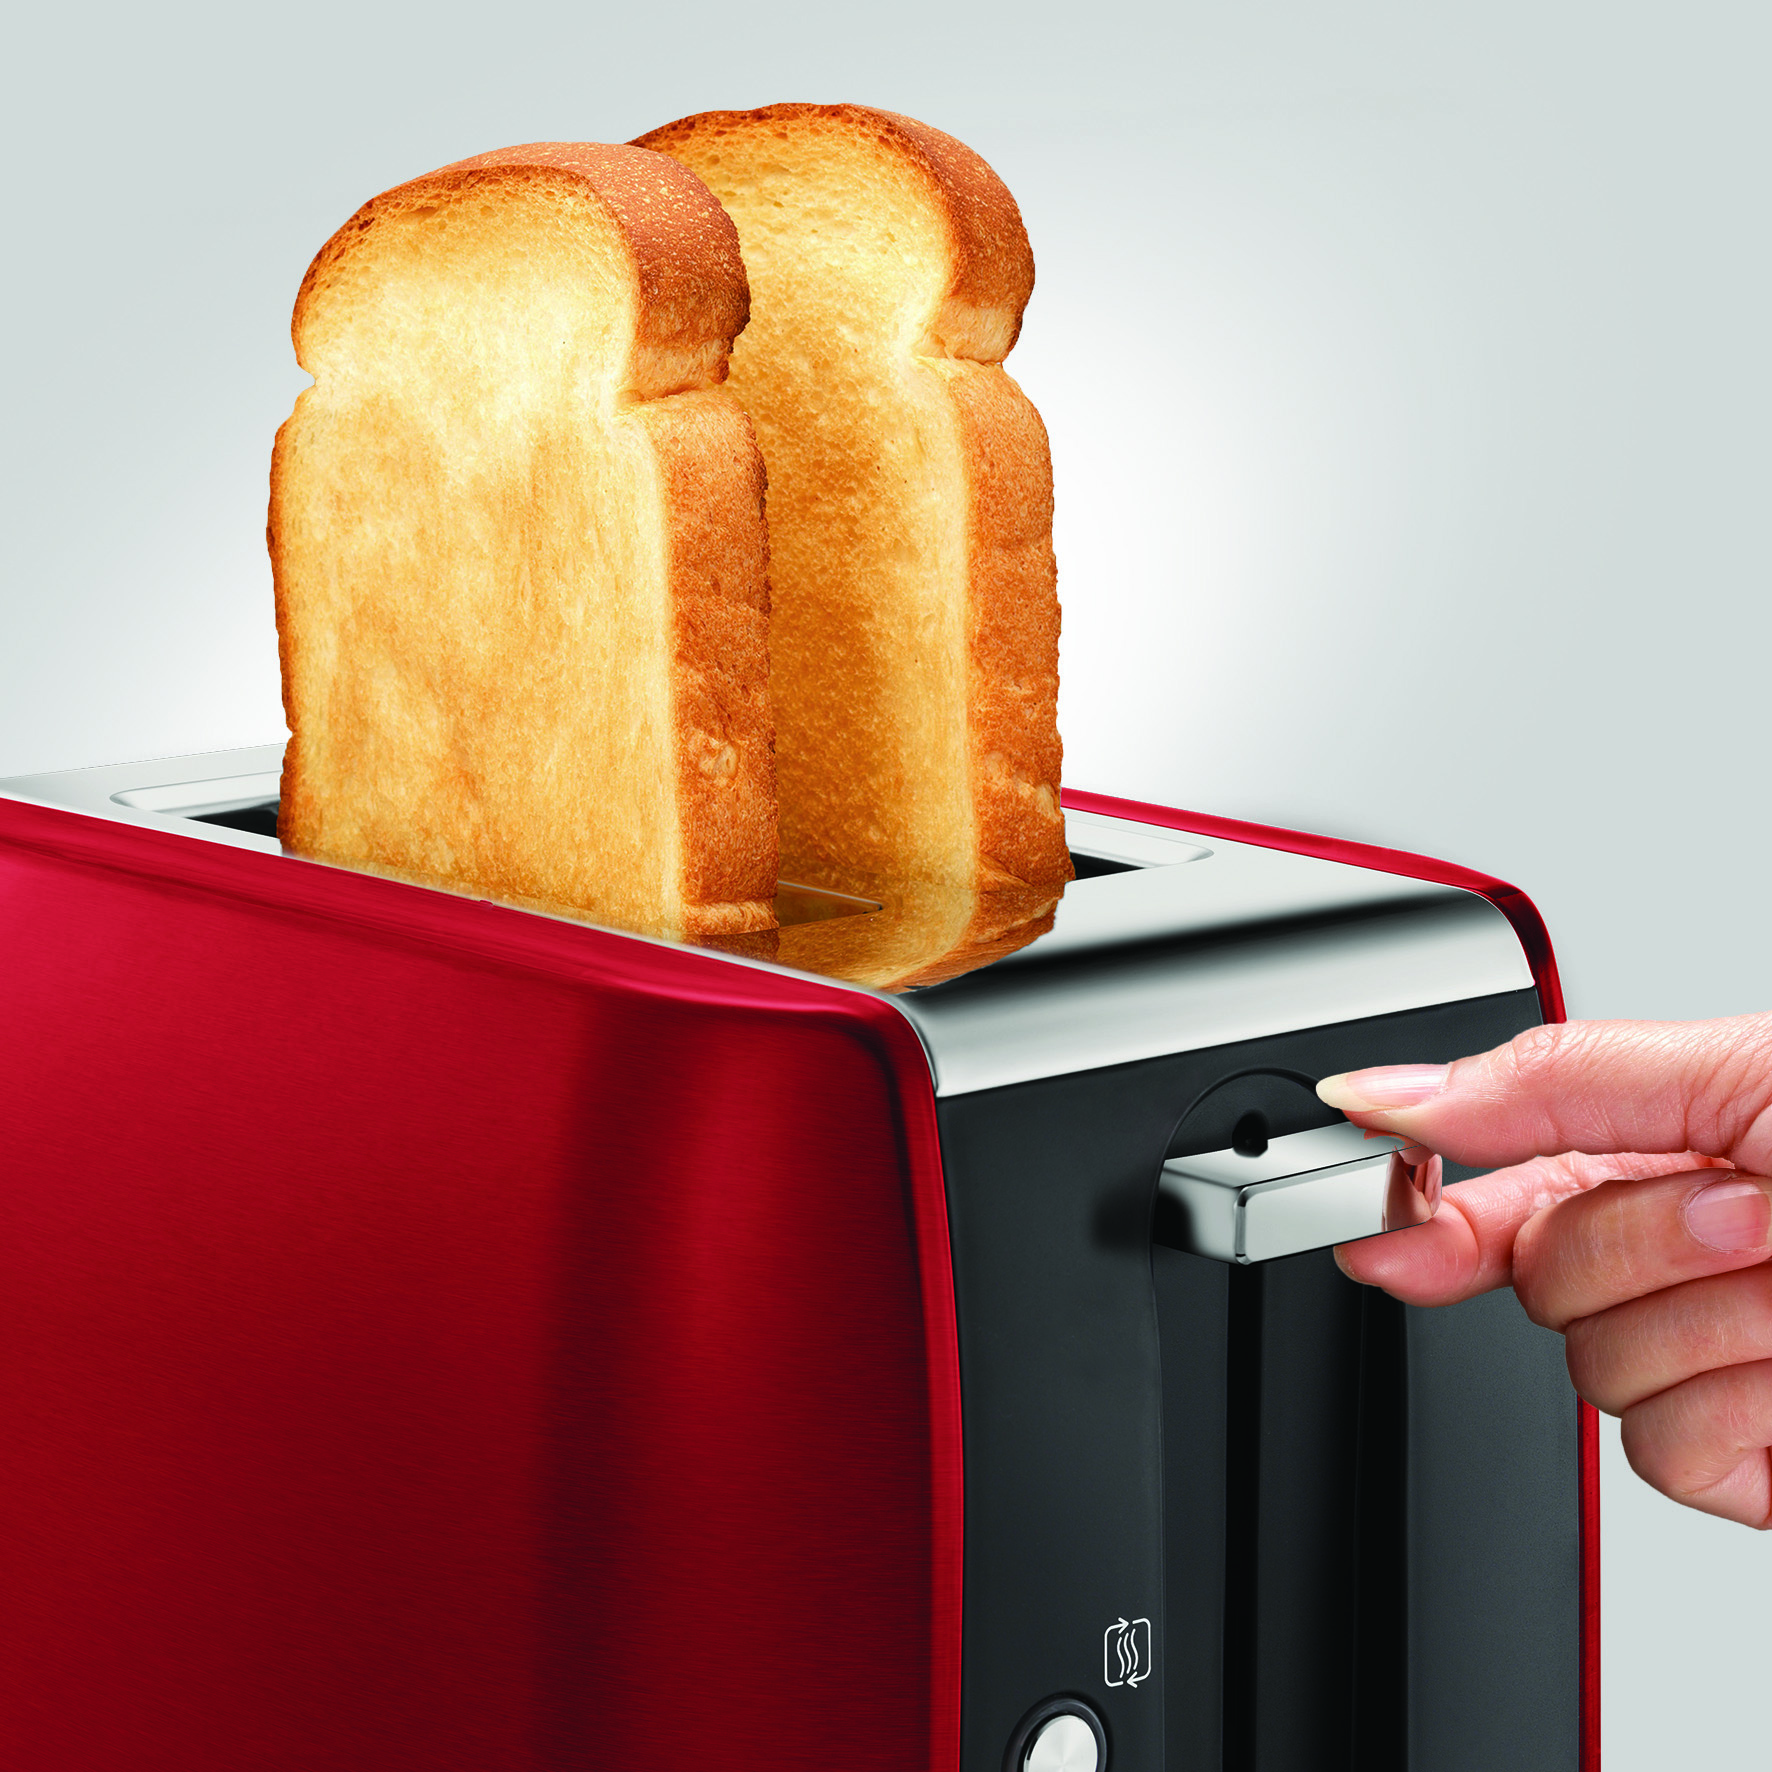 Morphy Richards 222060 Stainless Steel Equip 2-Slice Toaster | Red Thumbnail 2